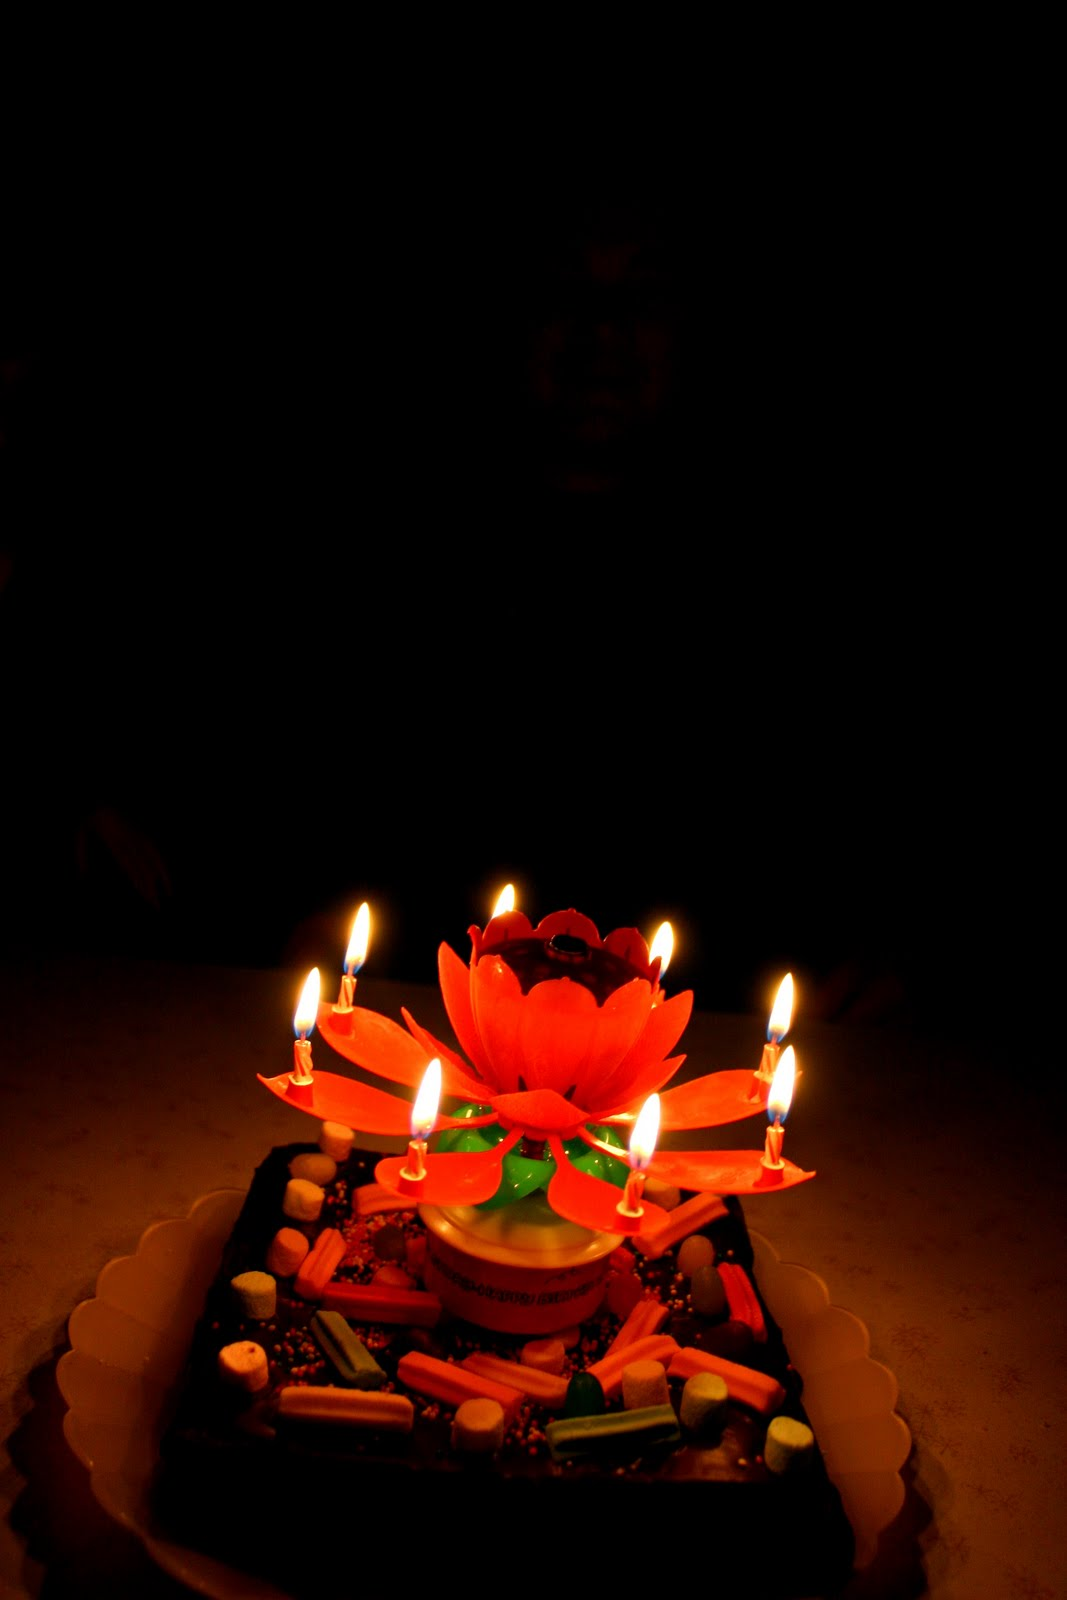 Even After The Centre Sparkle Has Finished Candles Keep Revolving Birthday Goood Times